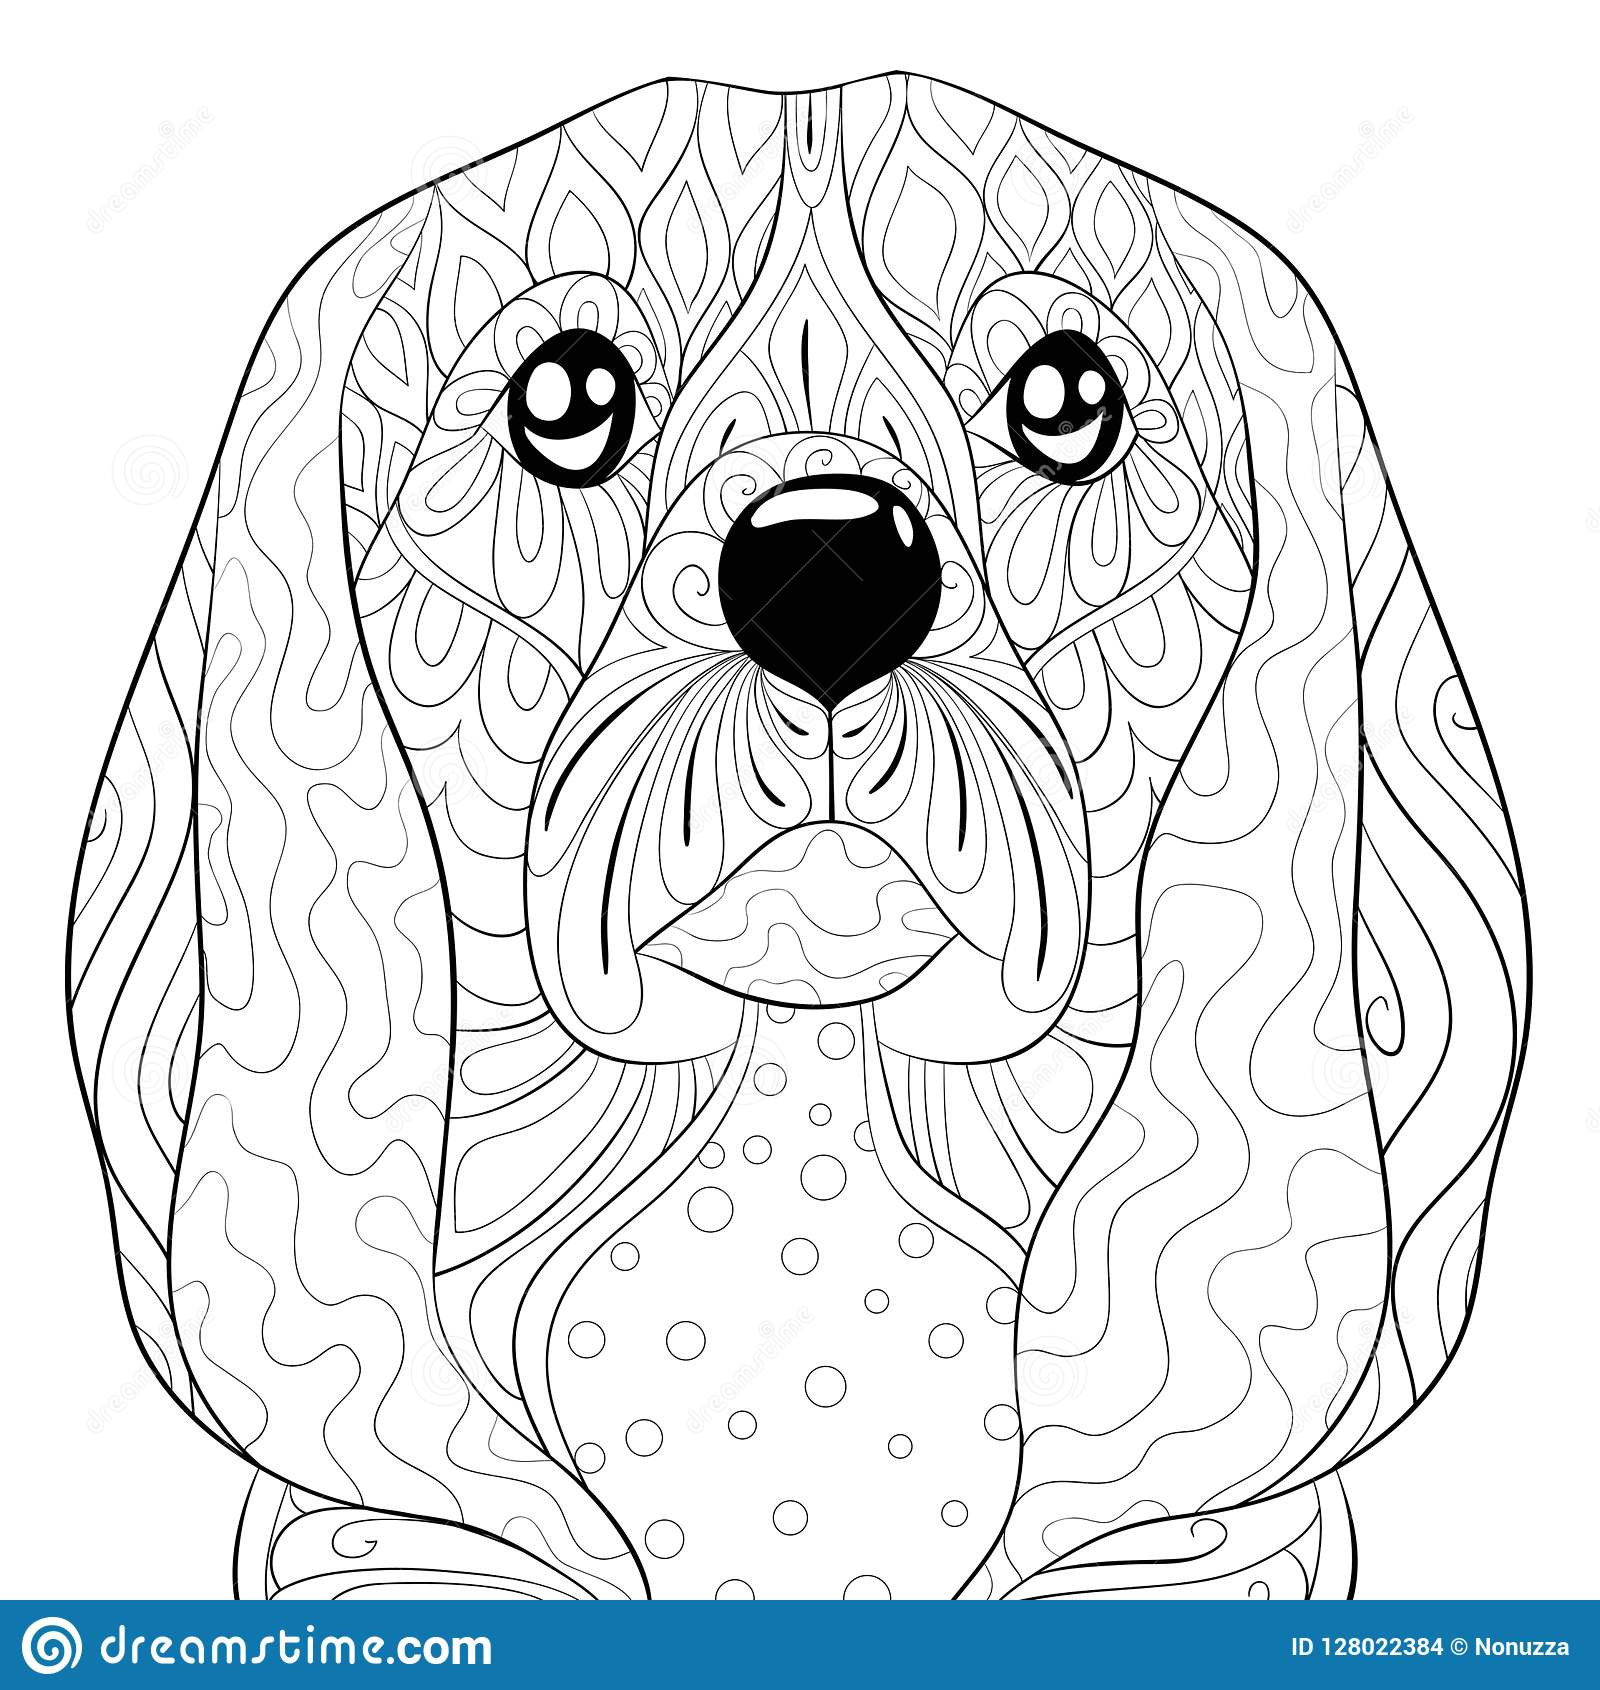 Adult Coloring Page,book A Cute Dog Image For Relaxing ...